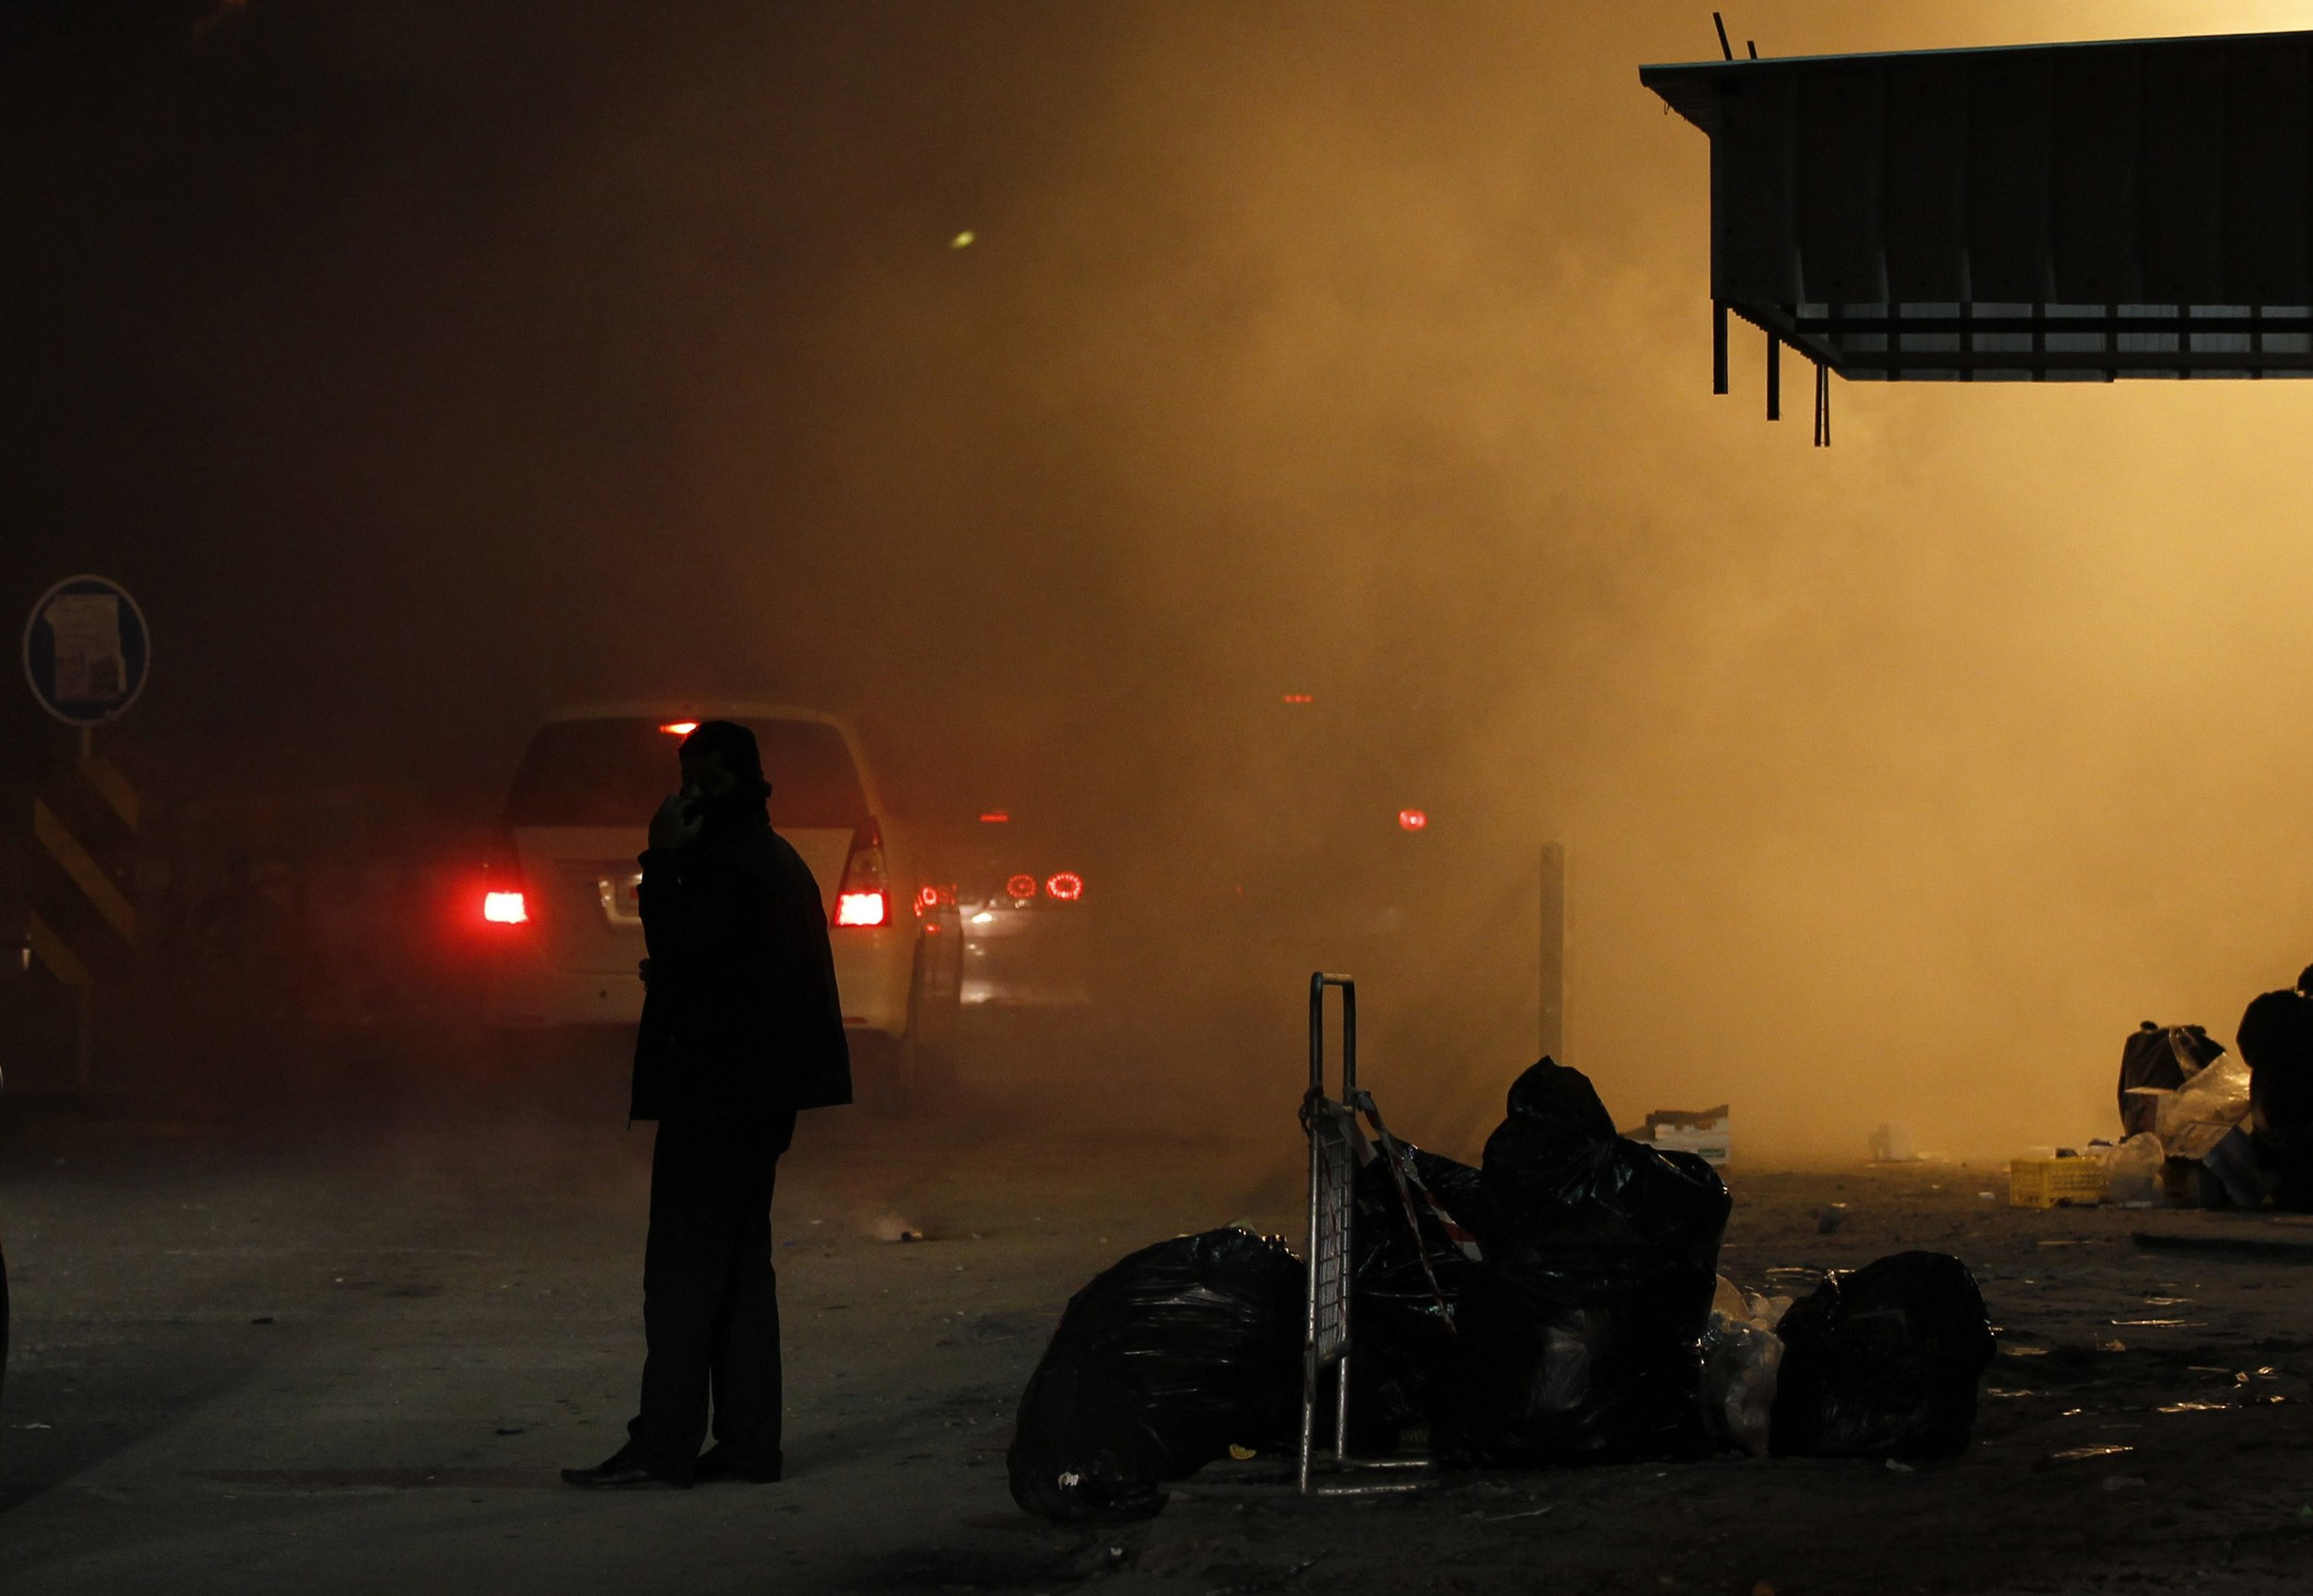 Starting to visit detainees in Bahrain - Protester in Manama, December 7, 2011 - Photo courtesy of Reuters/Hamad I, Mohammed